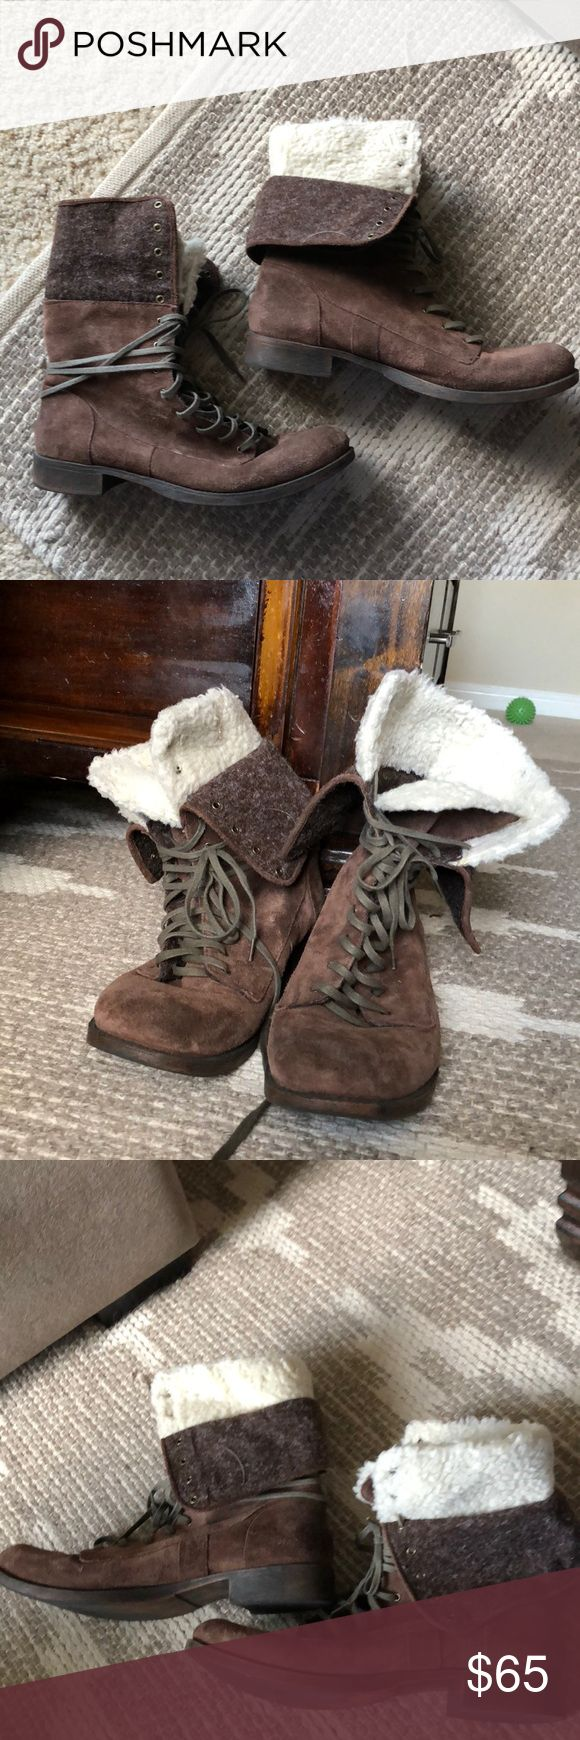 Nine West American vintage fur lined lace up boots Bohemian/ vintage style brown with white fur lined boots with a combat lace up front, Nine West American vintage. Very good condition, worn 4-5 times. Nine West Shoes Lace Up Boots